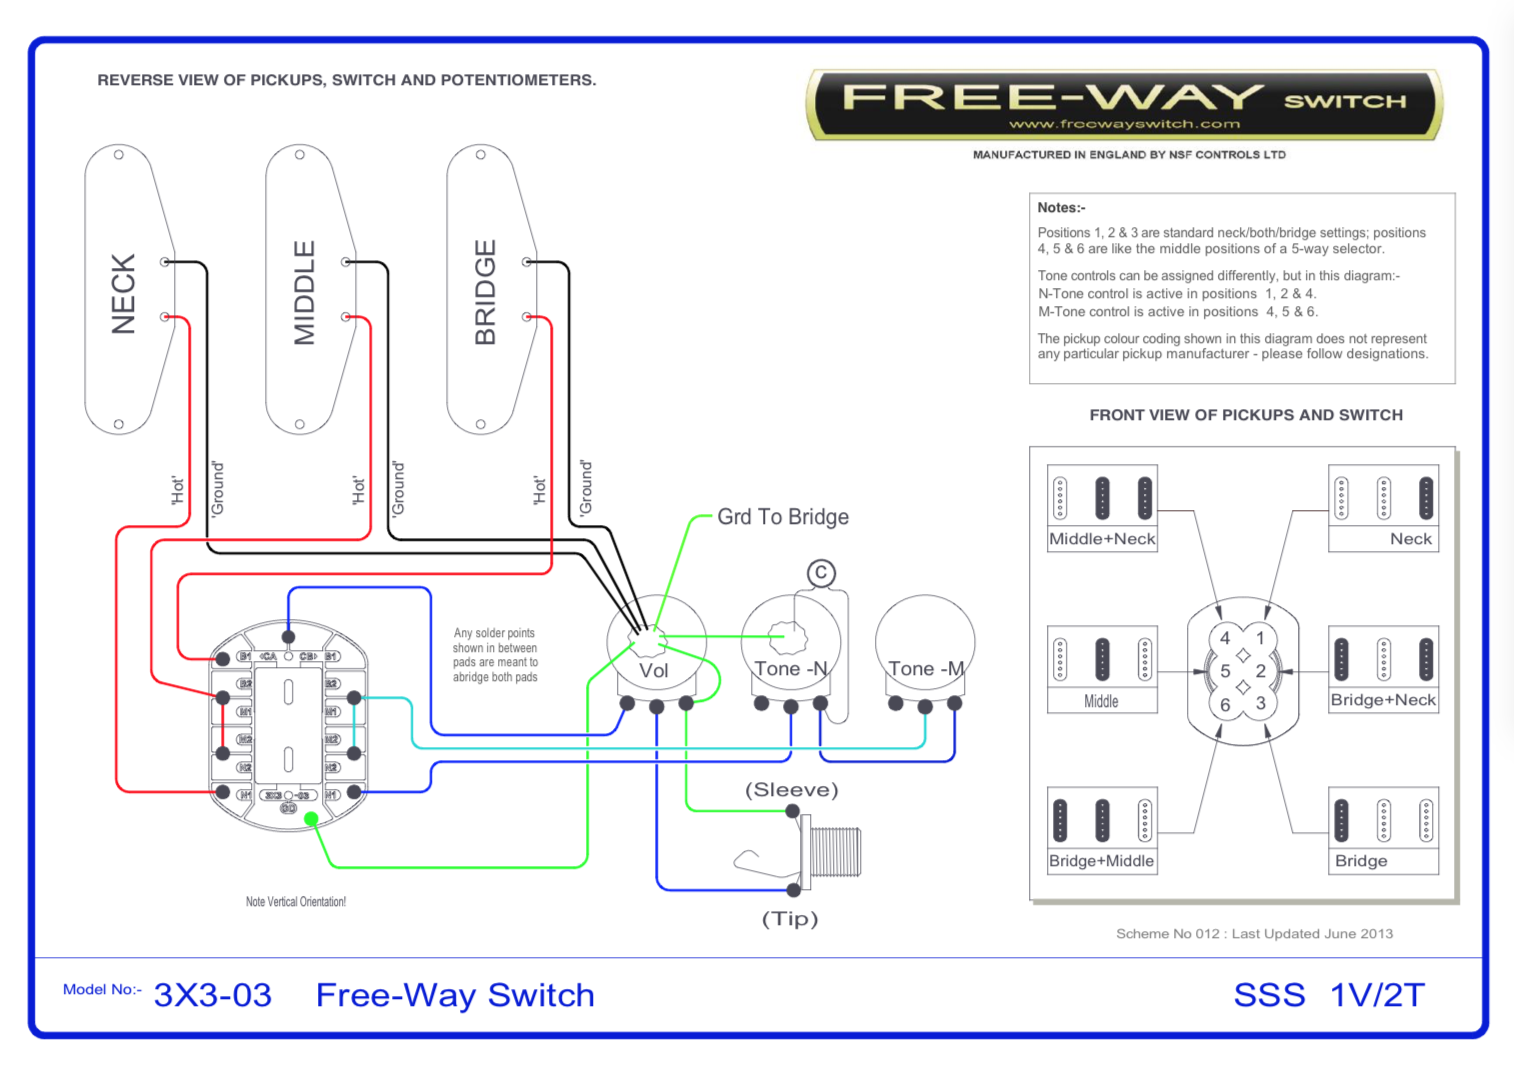 monaco iii freeway switch wiring ask the hfc experts hamer fan rh hamerfanclub com